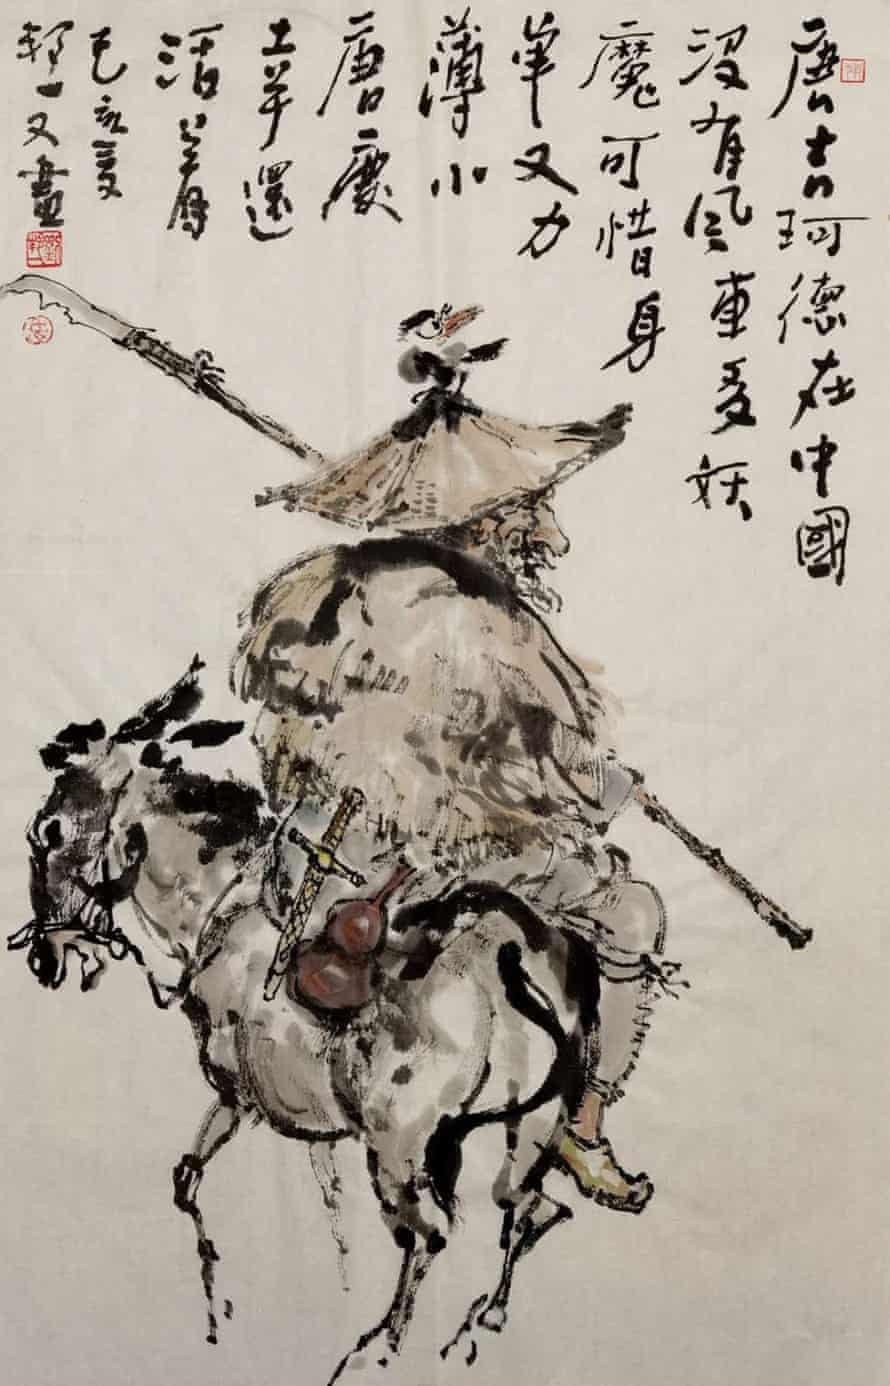 Don Quixote in Chinese translation